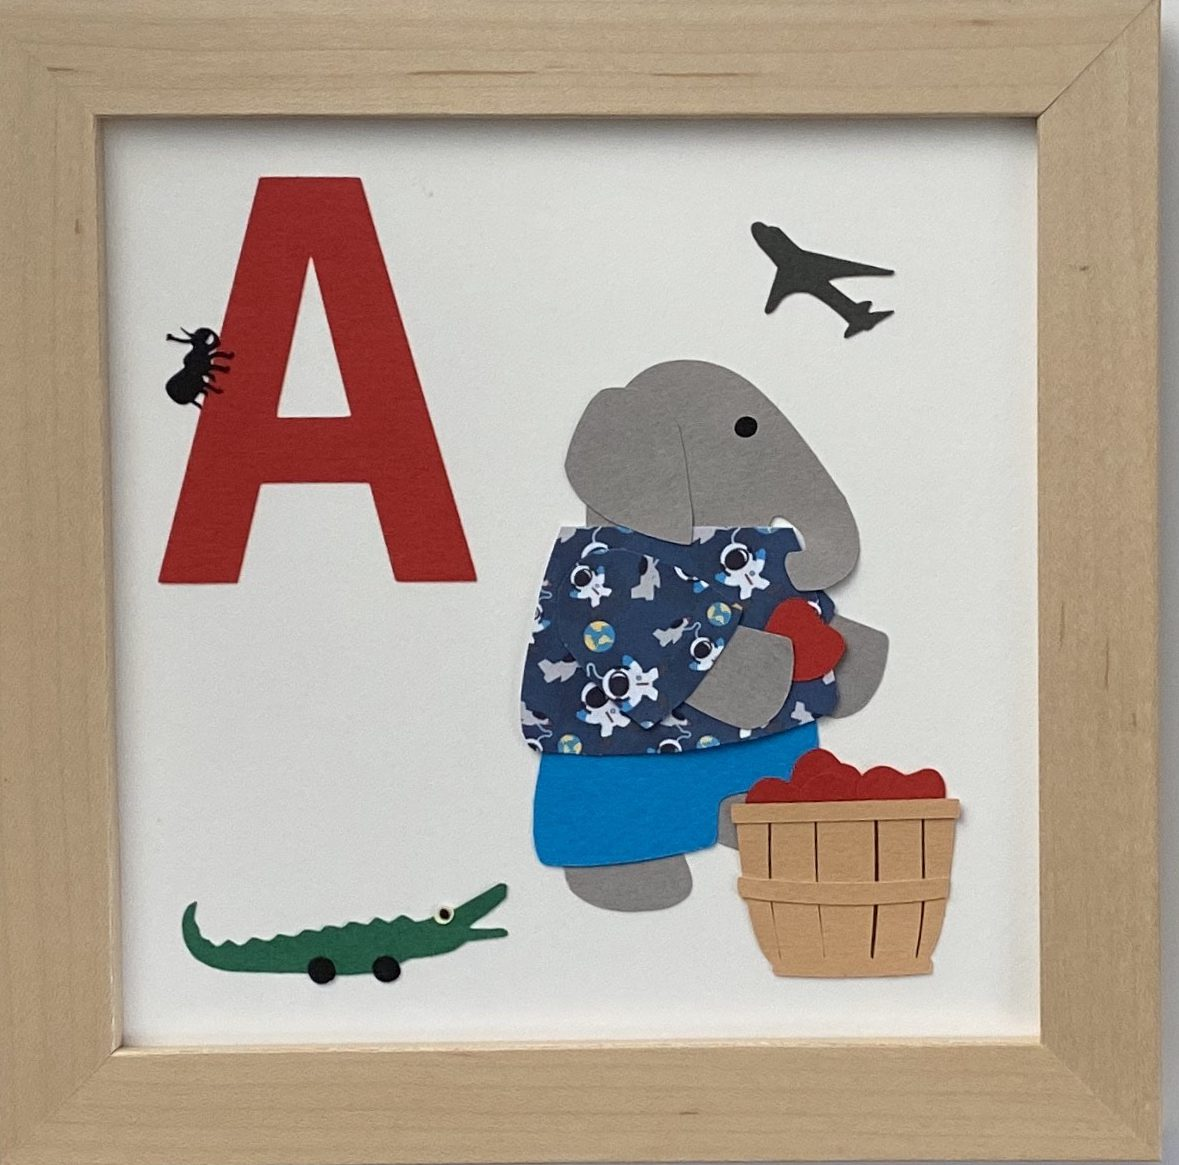 A initial sign - Elephant with alligator, ant, airplane, apples, and a shirt with astronauts